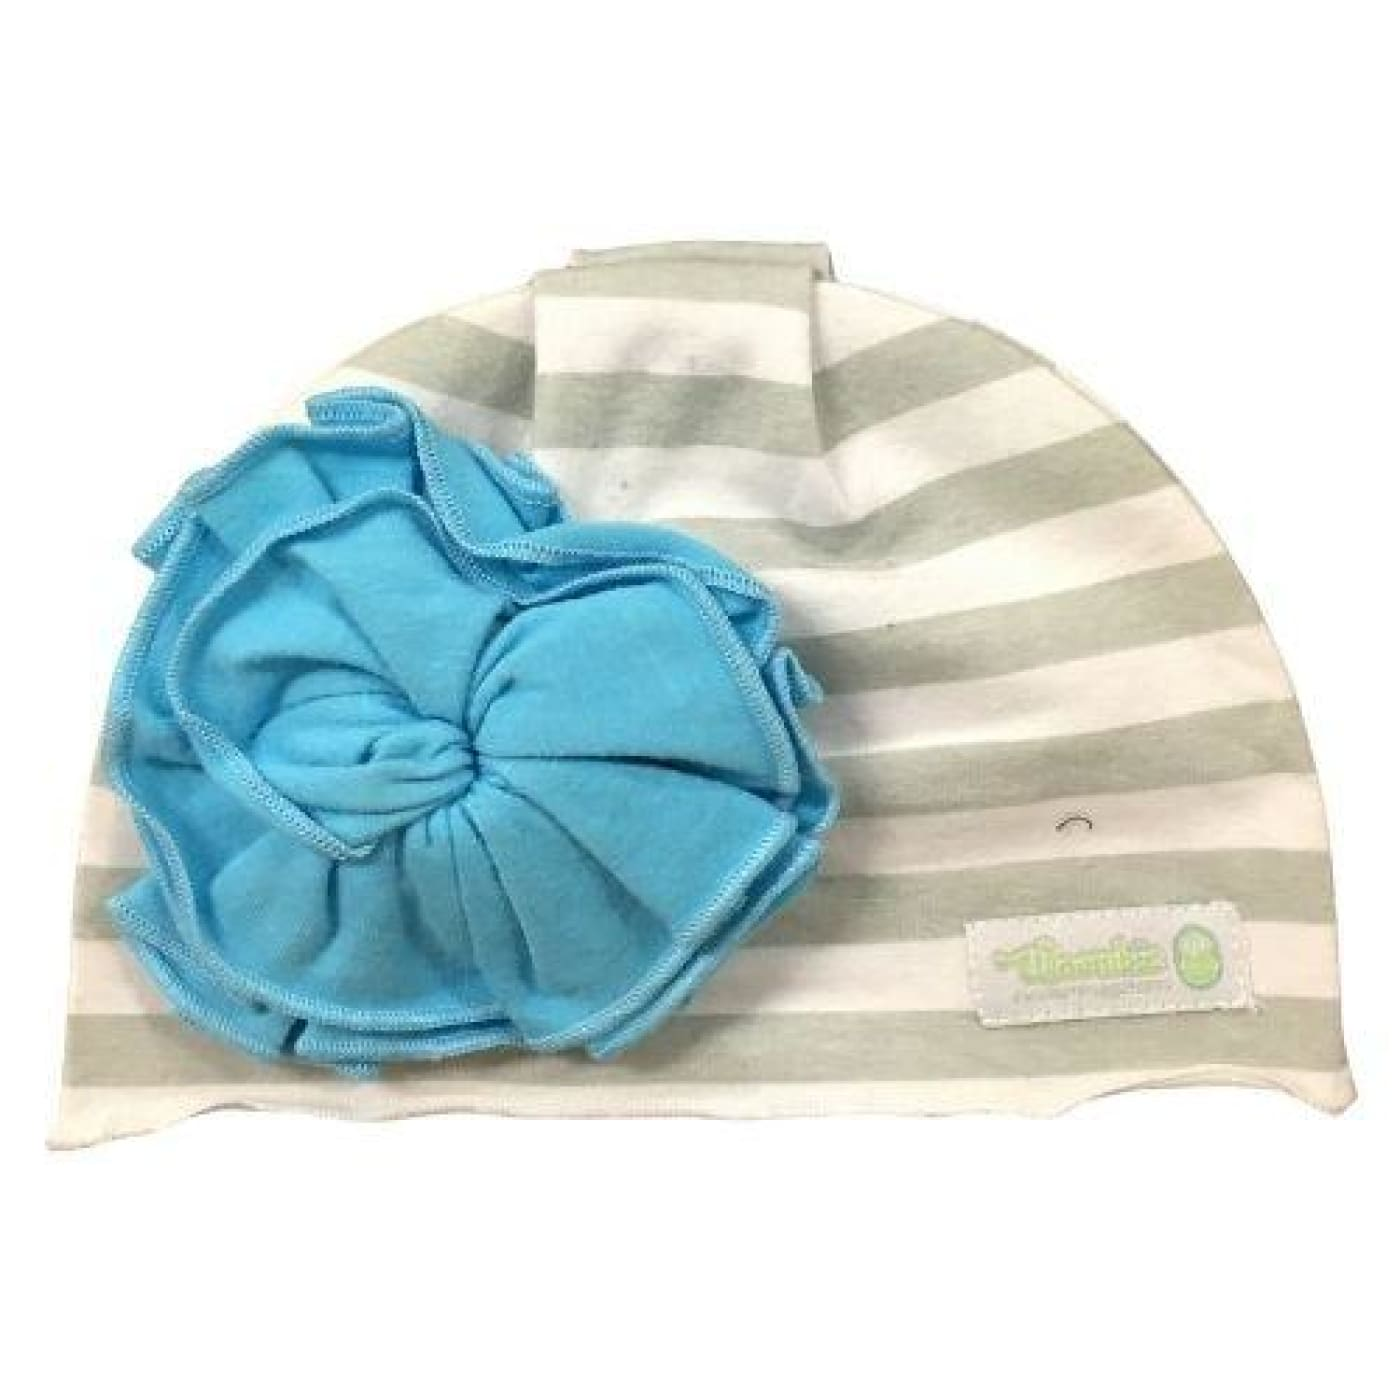 Woombie Flower Aqua Beanie 0-6M - 0-6m / Grey/White Striped - BABY & TODDLER CLOTHING - BEANIES/HATS